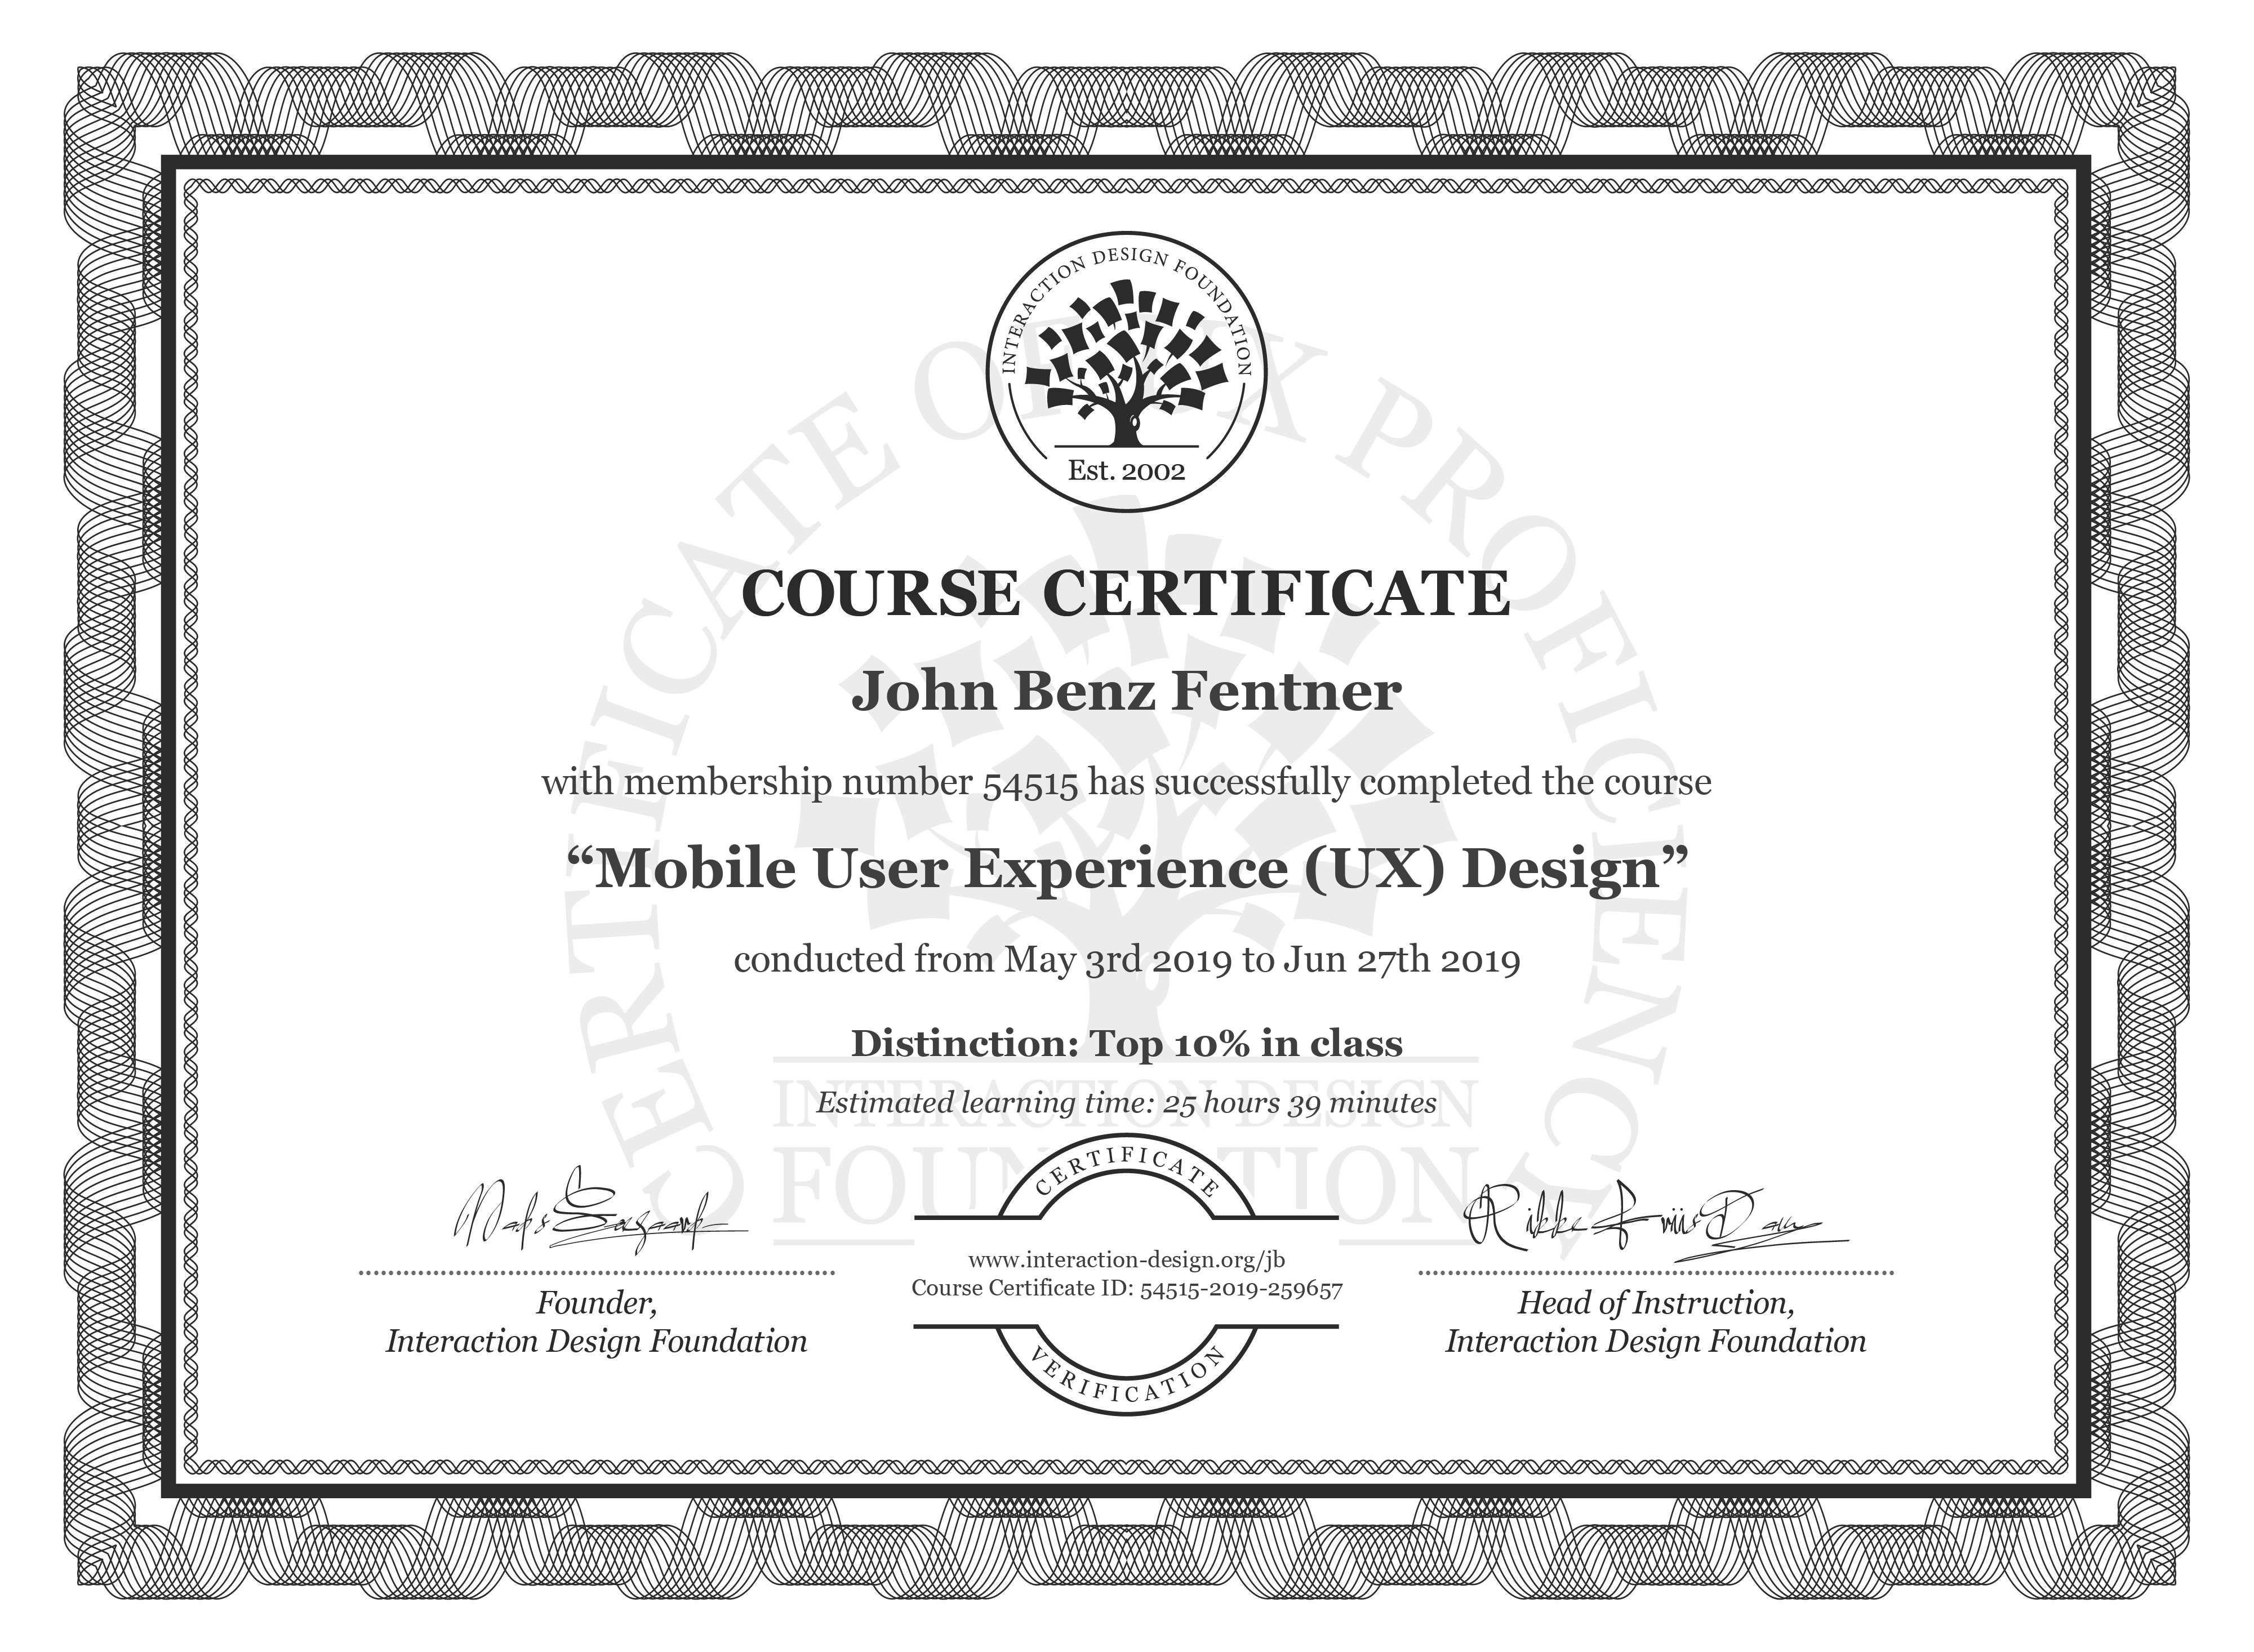 John Benz Fentner's Course Certificate: Mobile User Experience (UX) Design